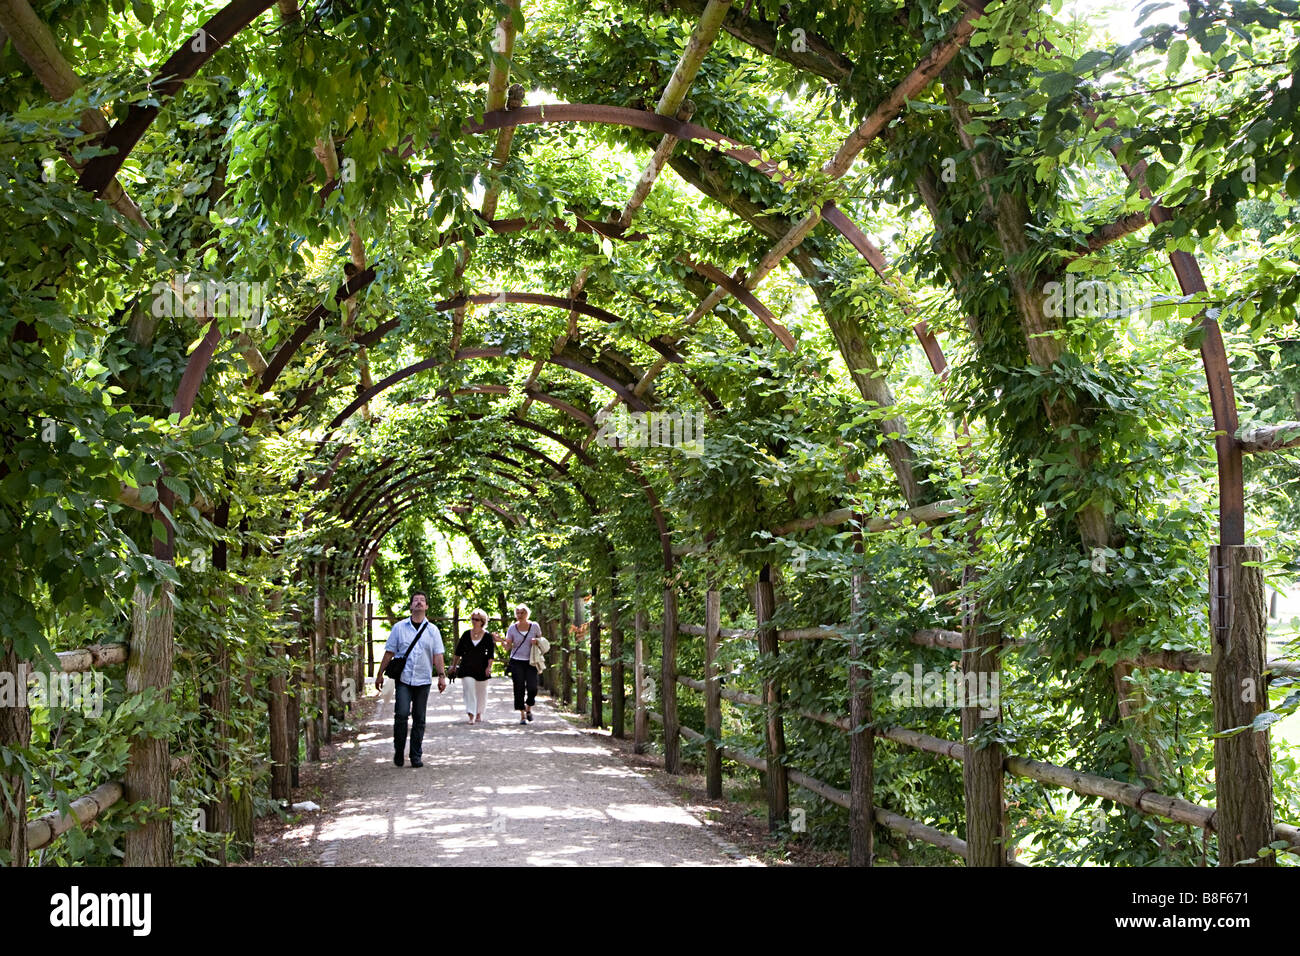 People walking through shade of pathway with plants trained over arches Schwerin Germany - Stock Image